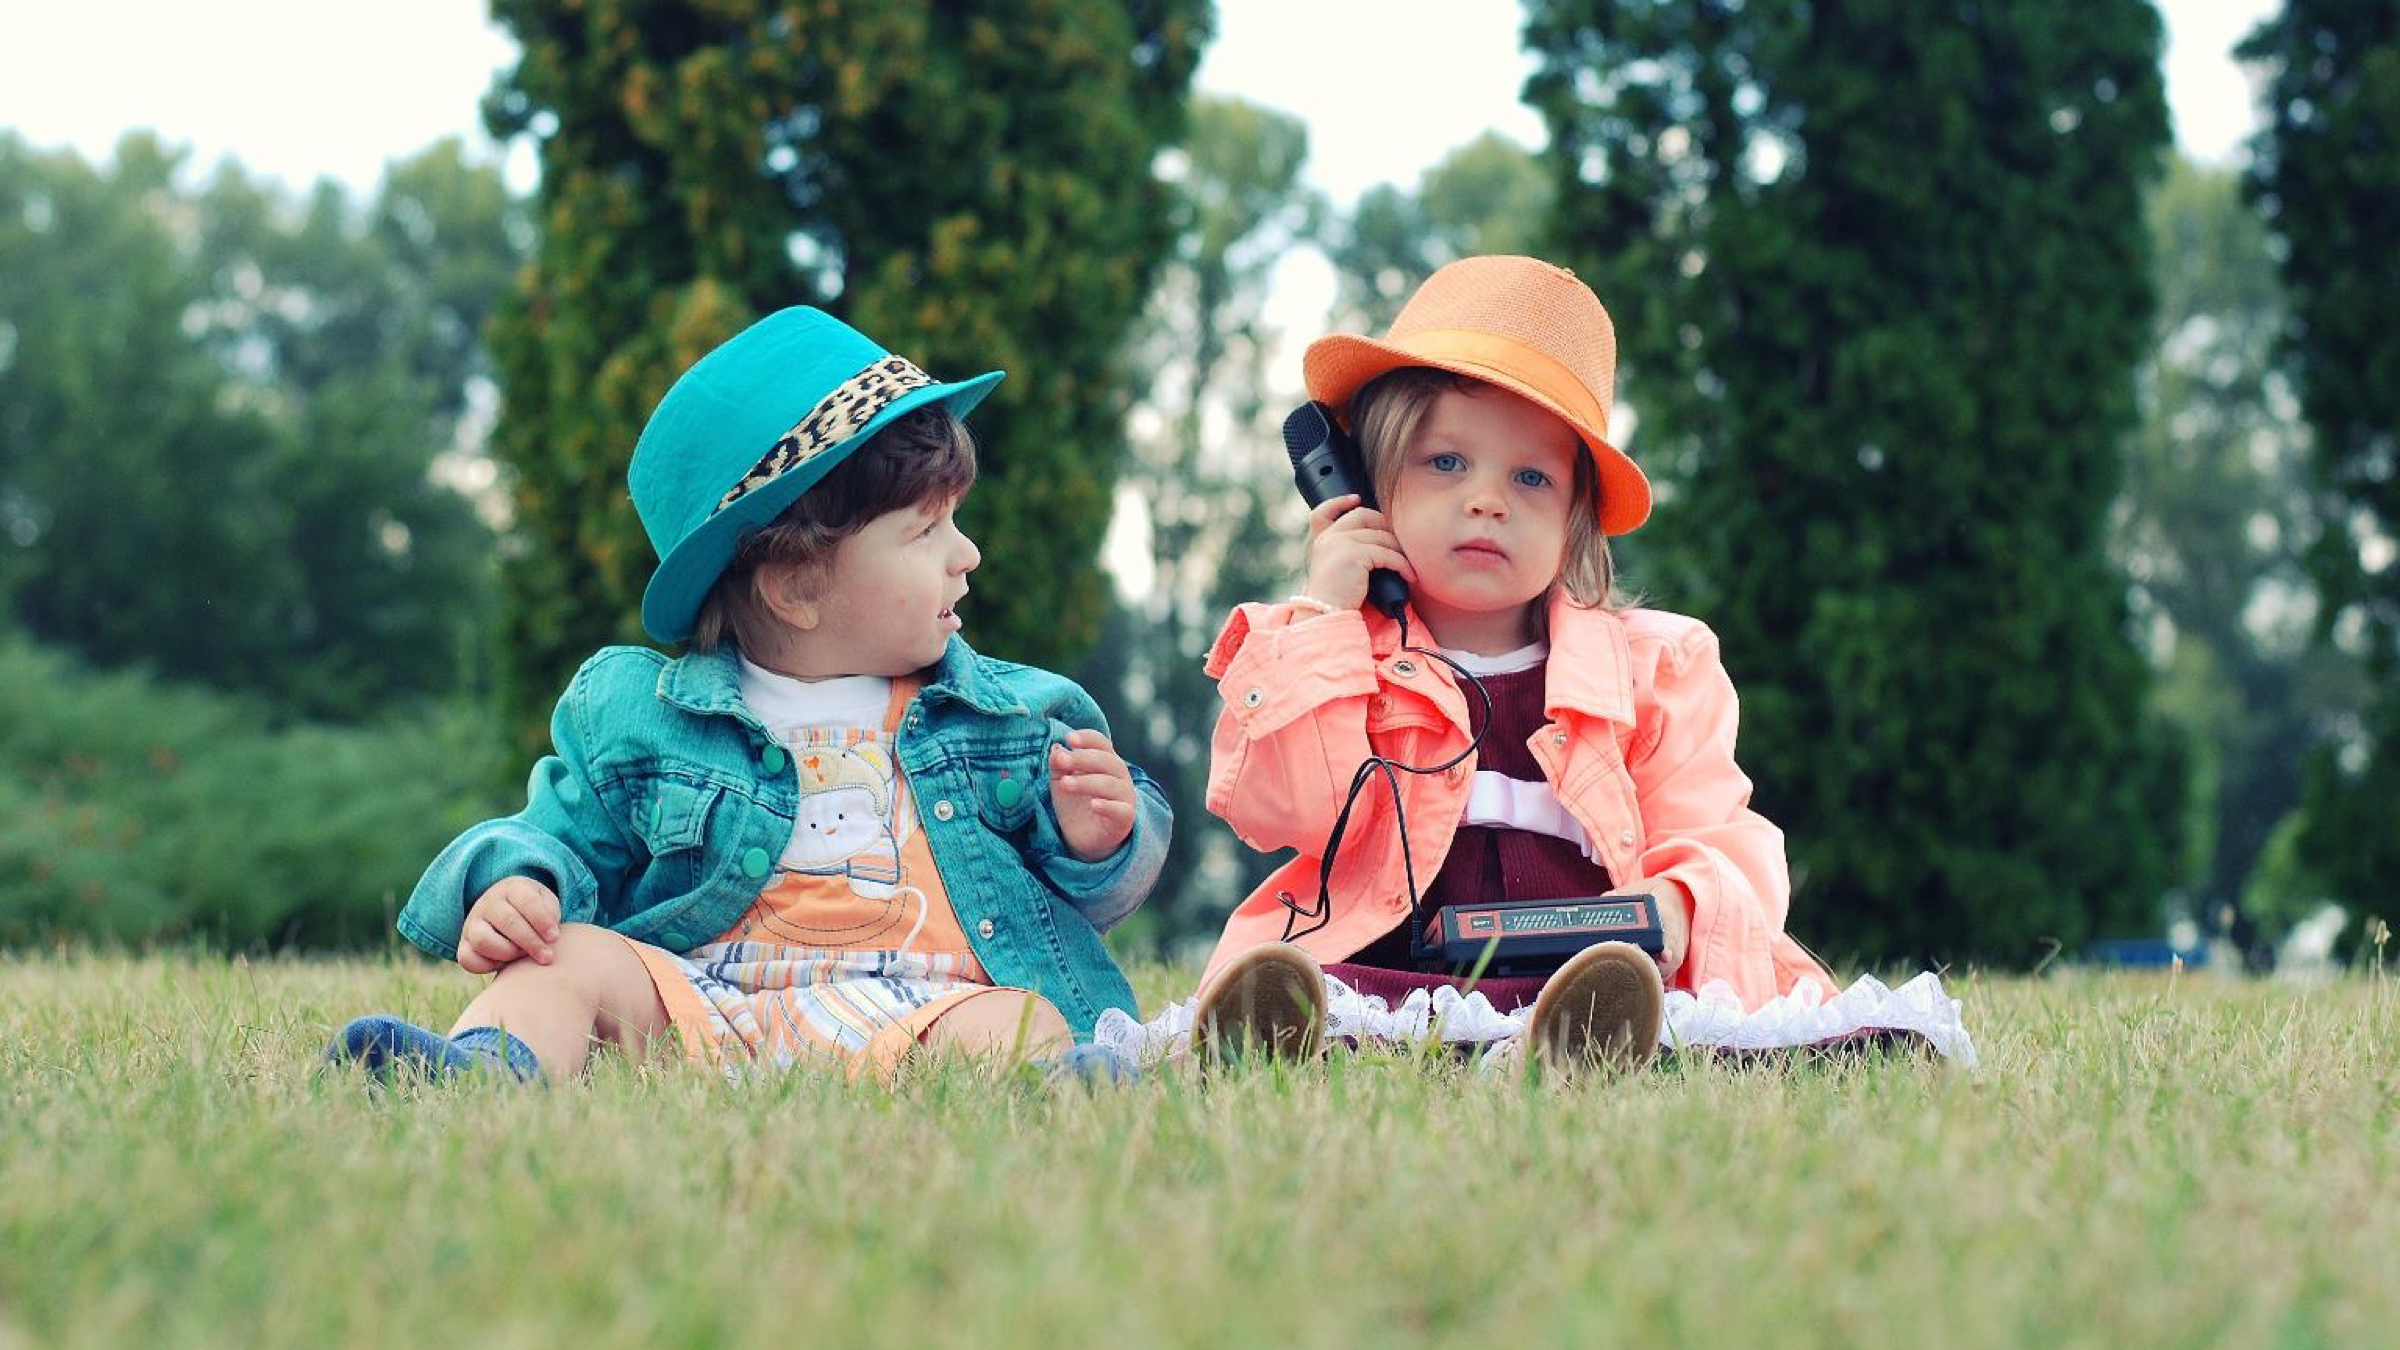 Two small children in colorful, adult-looking hats and jackets